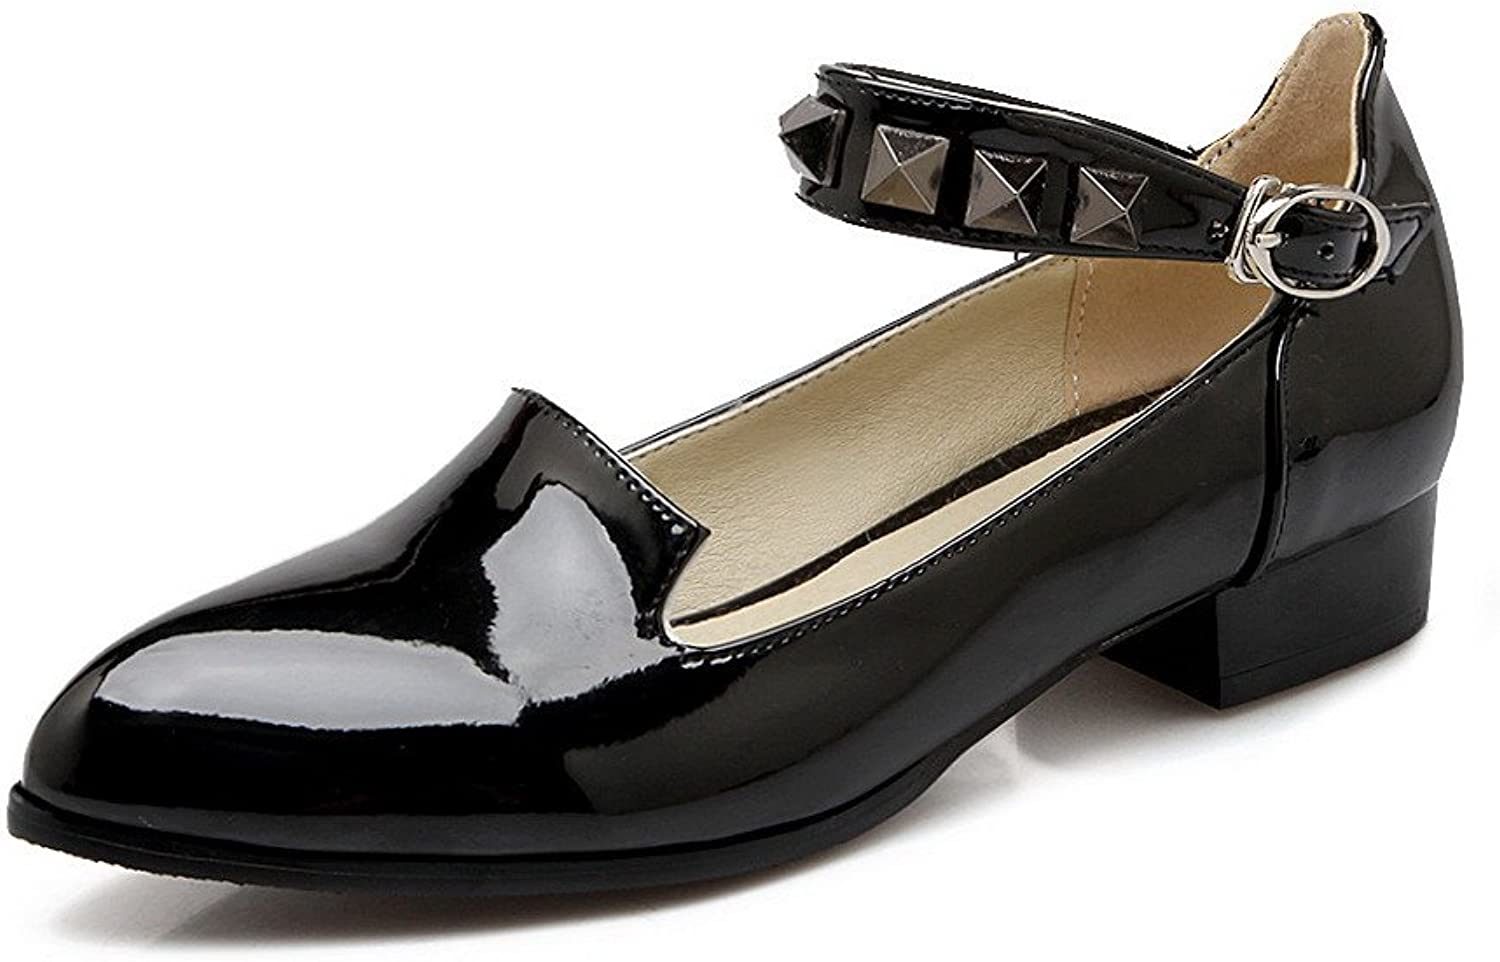 AmoonyFashion Women's Low-Heels Solid Buckle Patent Leather Pointed Closed Toe Pumps-shoes